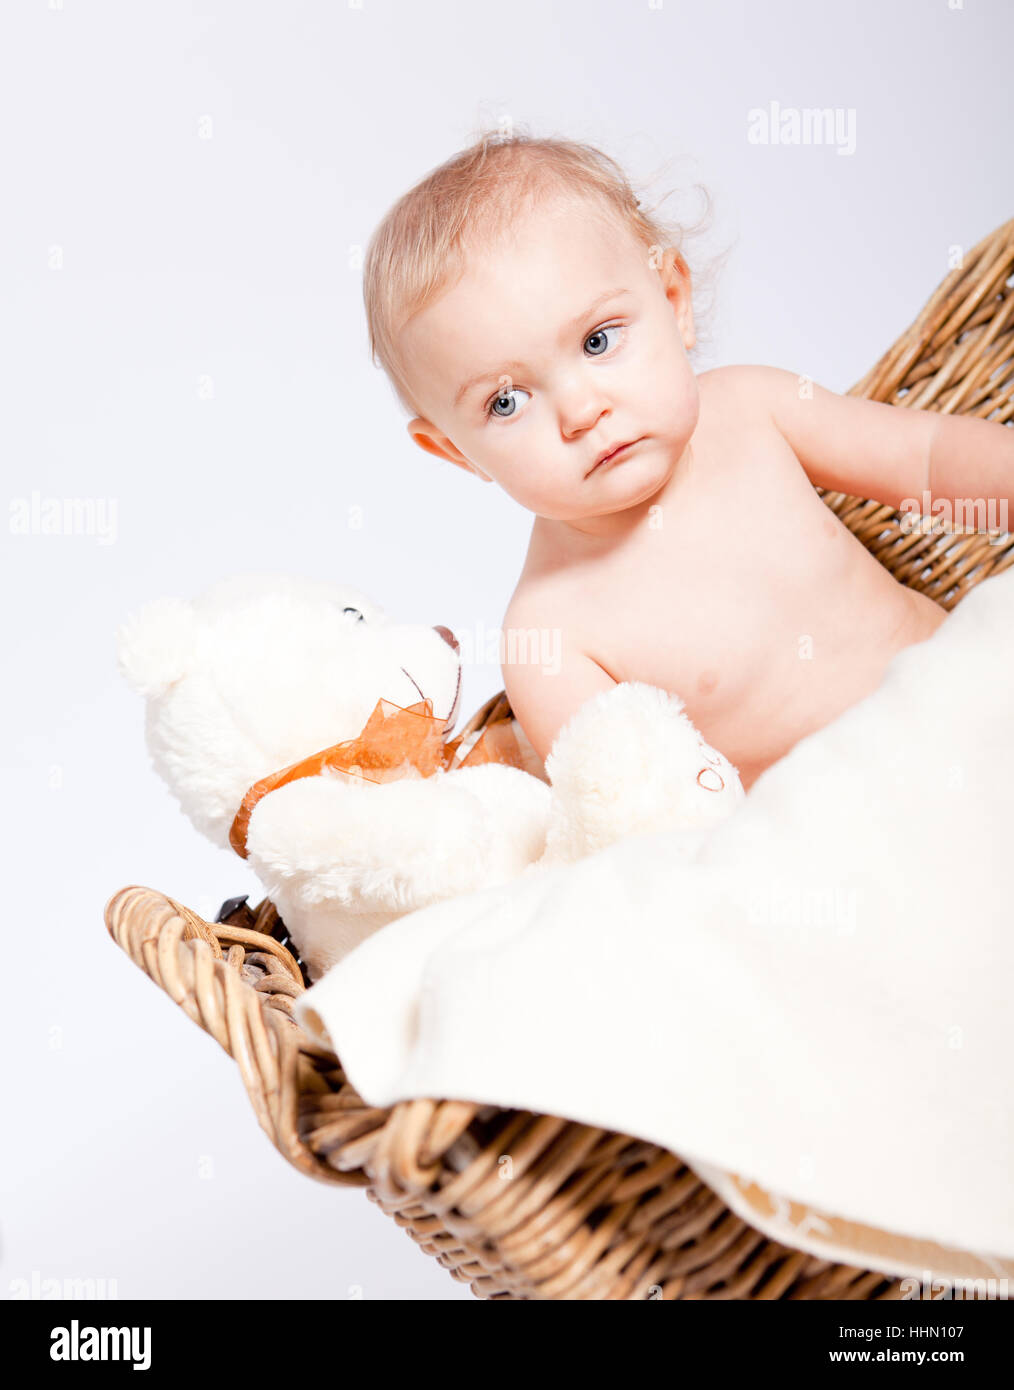 kleines baby kind nackt in einem korb mit einer windel vor wei em stock photo 131383511 alamy. Black Bedroom Furniture Sets. Home Design Ideas